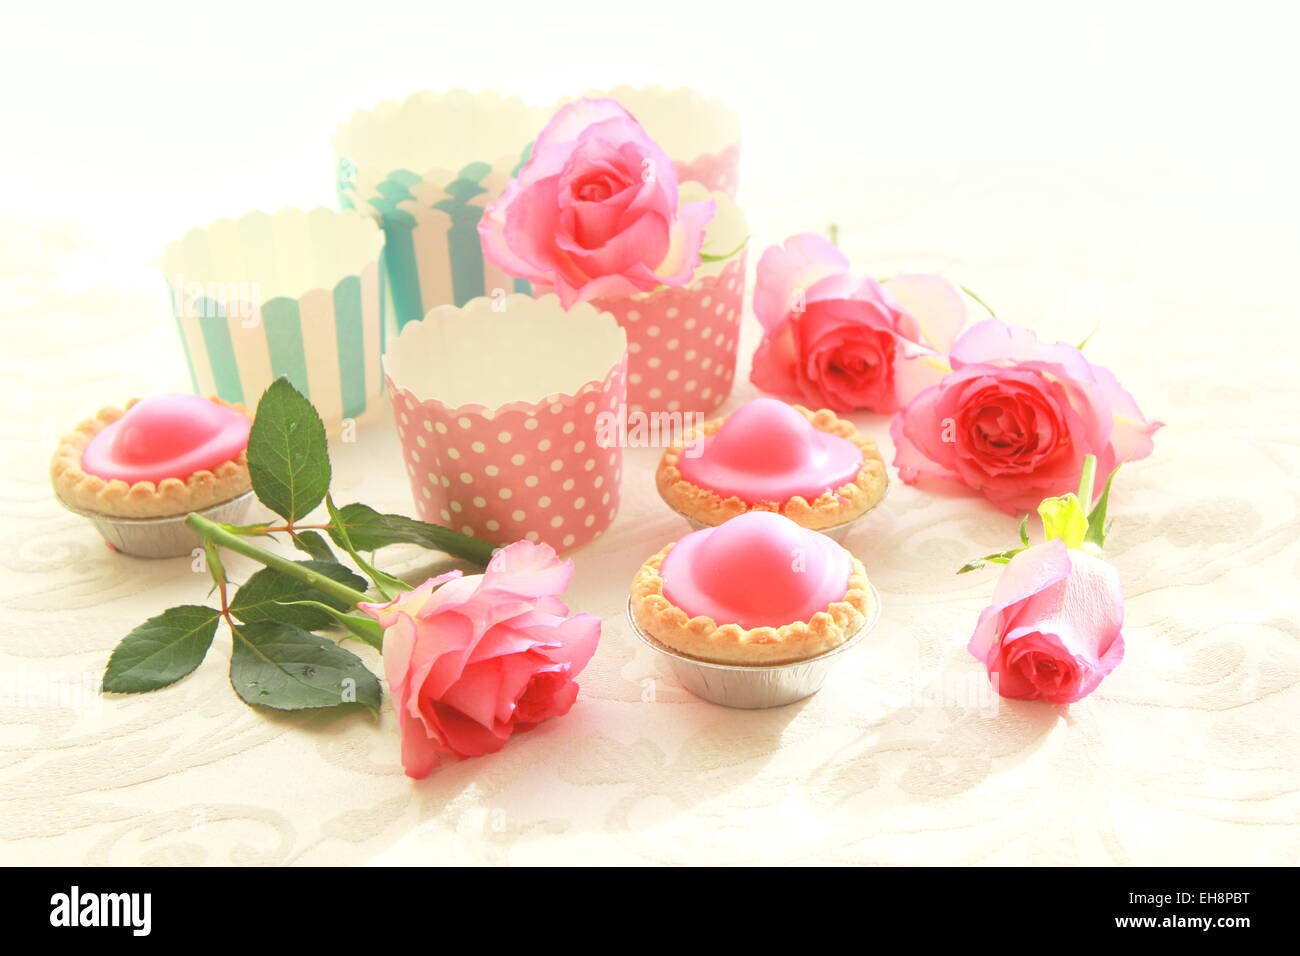 Pink cakes on blue plate with pink roses - Stock Image